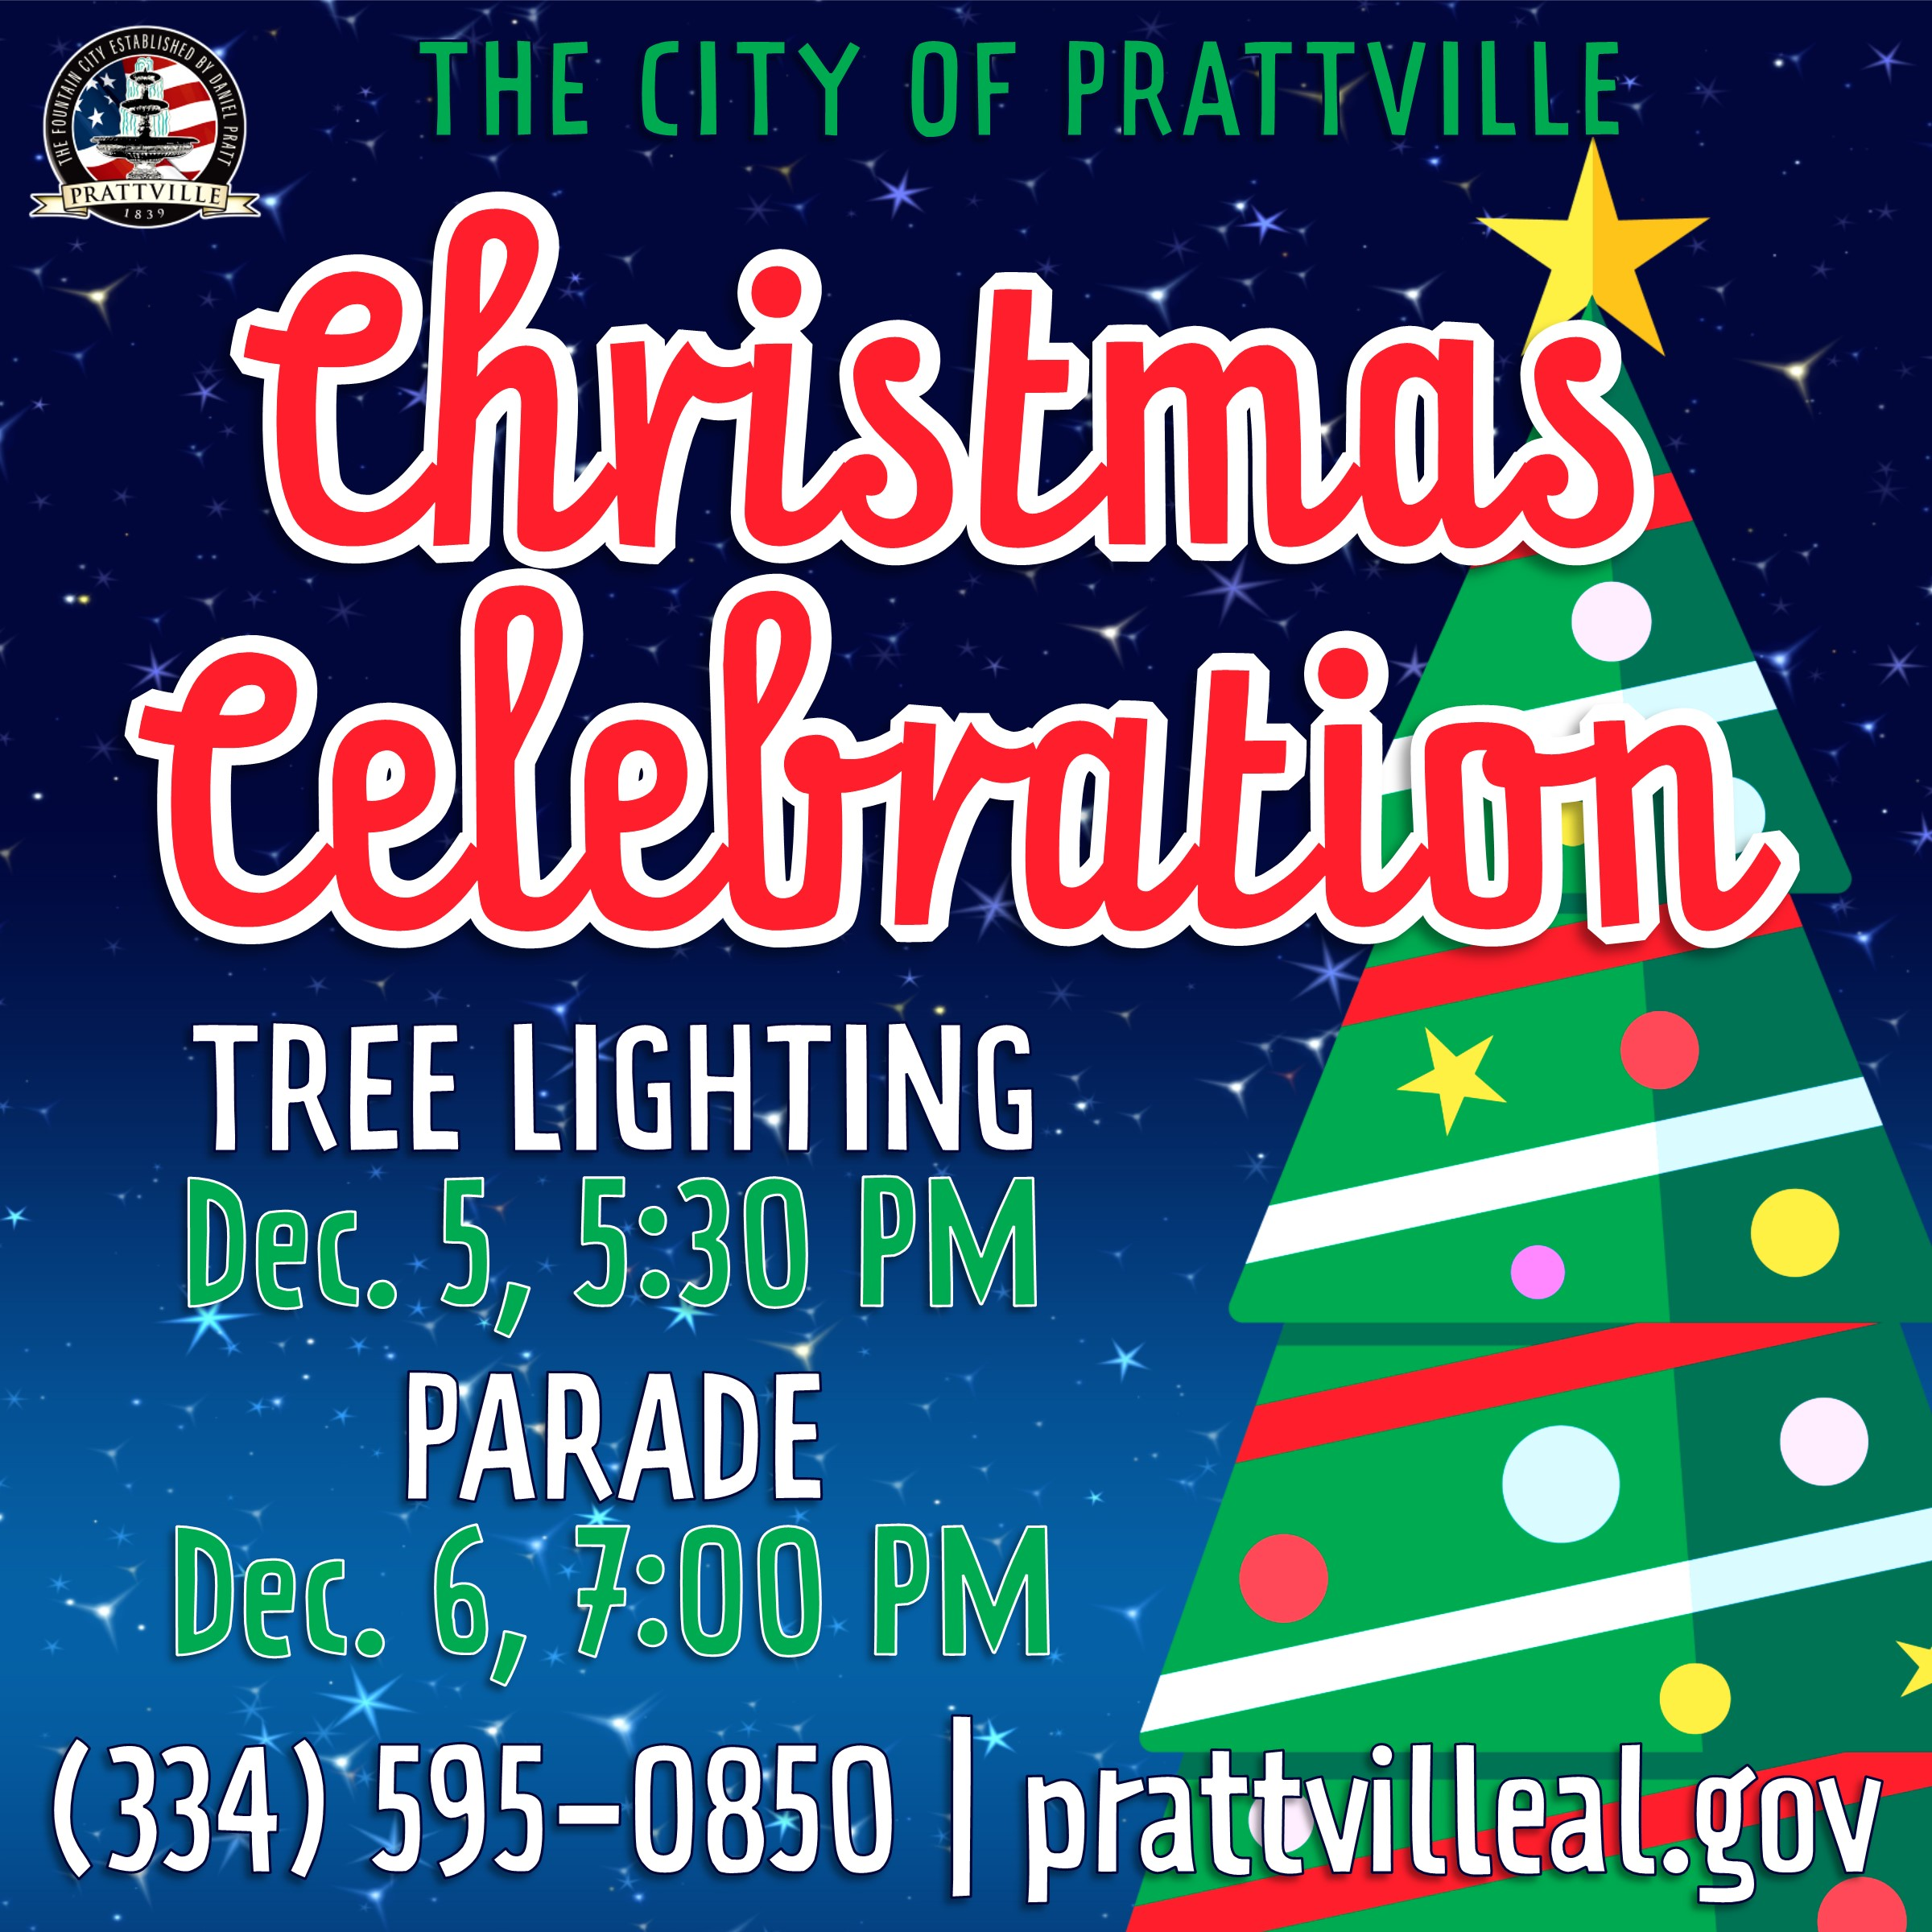 Prattville Christmas 2020 Christmas Parade | Special Events : Prattville, Alabama